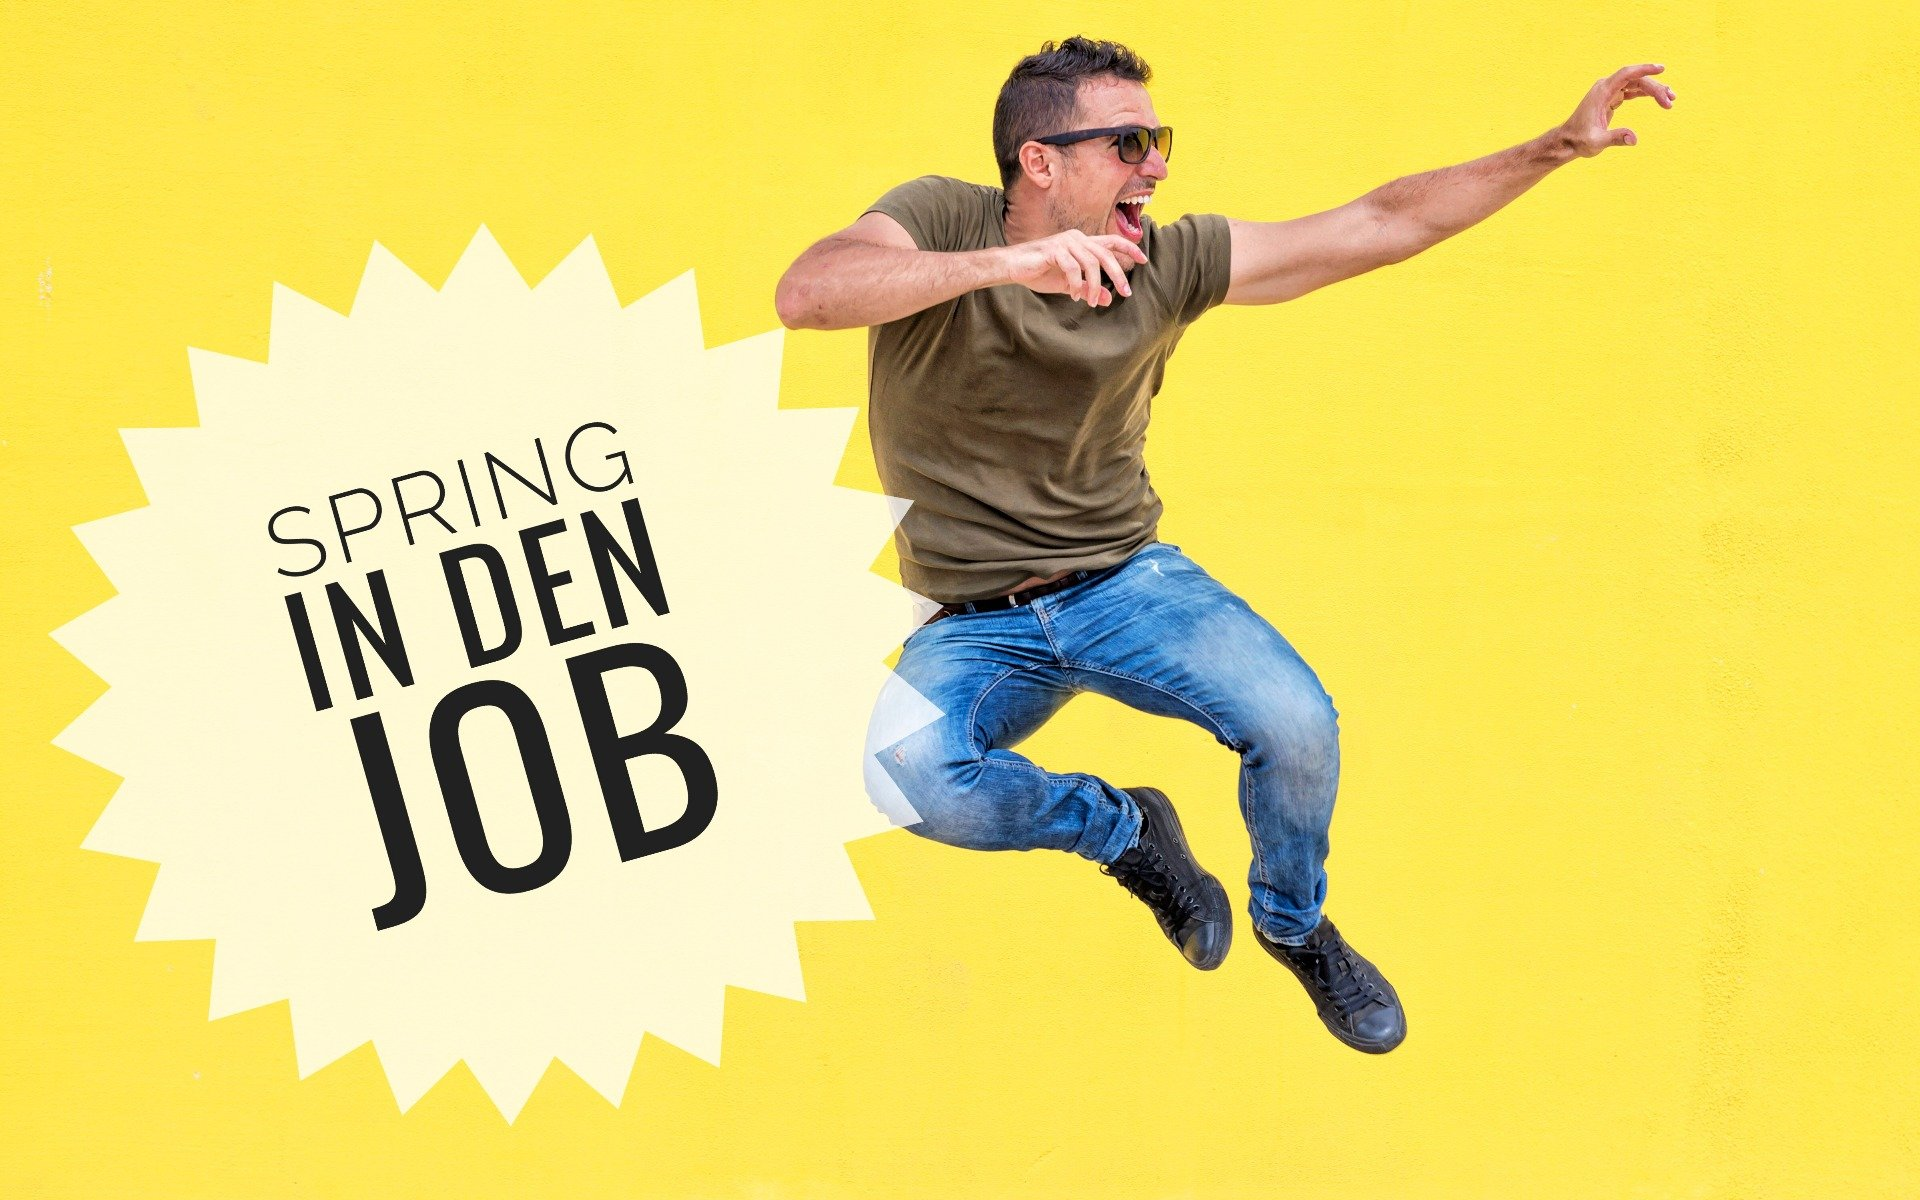 Spring in den Job (c) Foto: © raferto – photocase